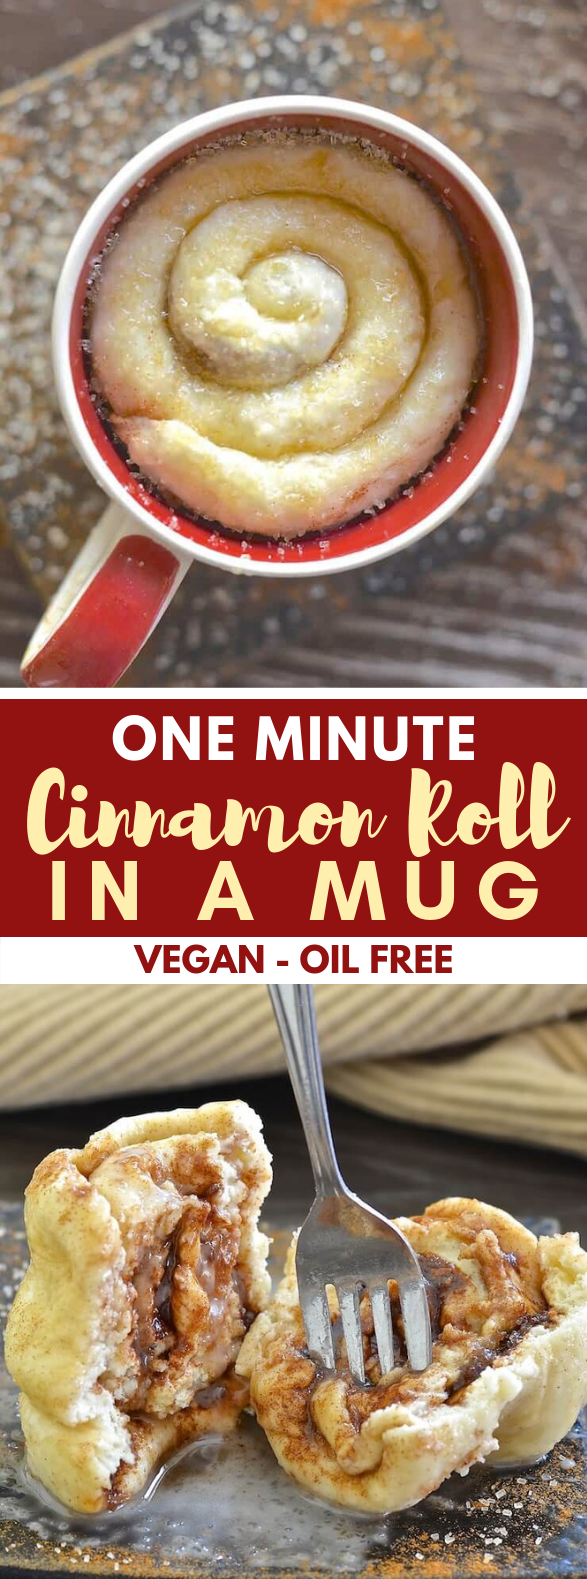 Cinnamon Roll in a Mug #dessert #vegan